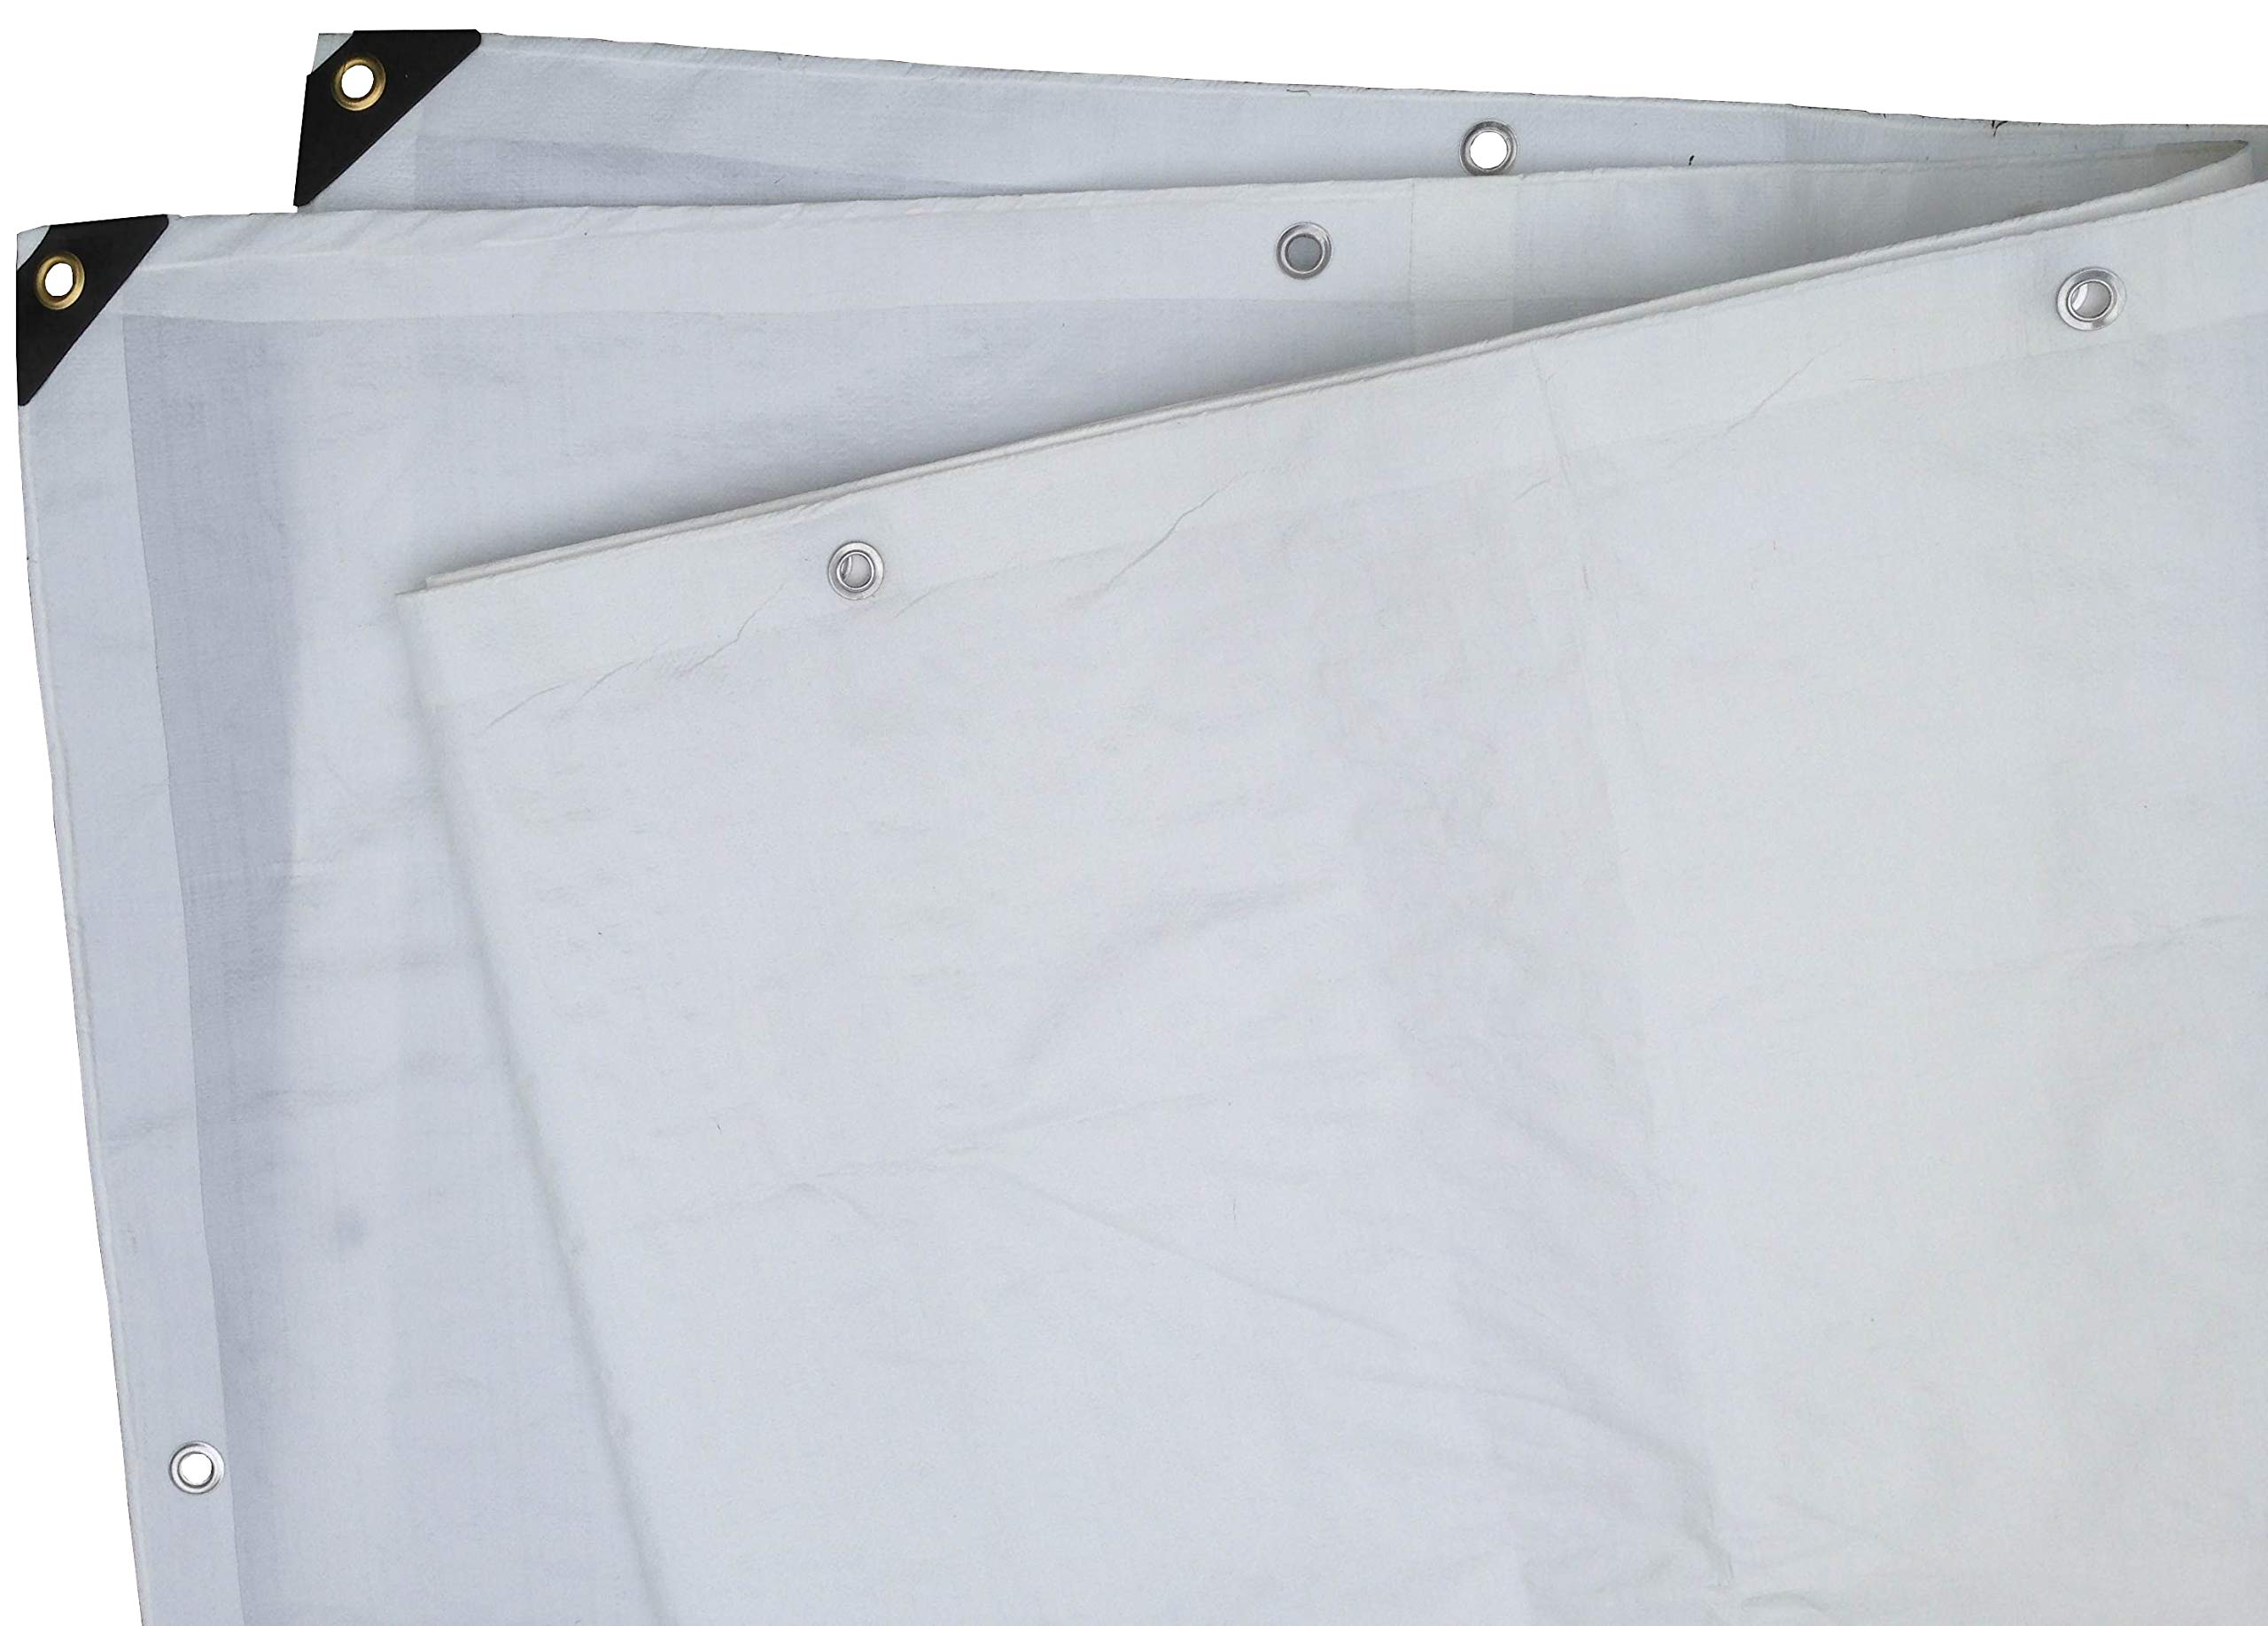 Heavy Duty White Tarp 6 Oz., 6'X10' by Tarpsdirect